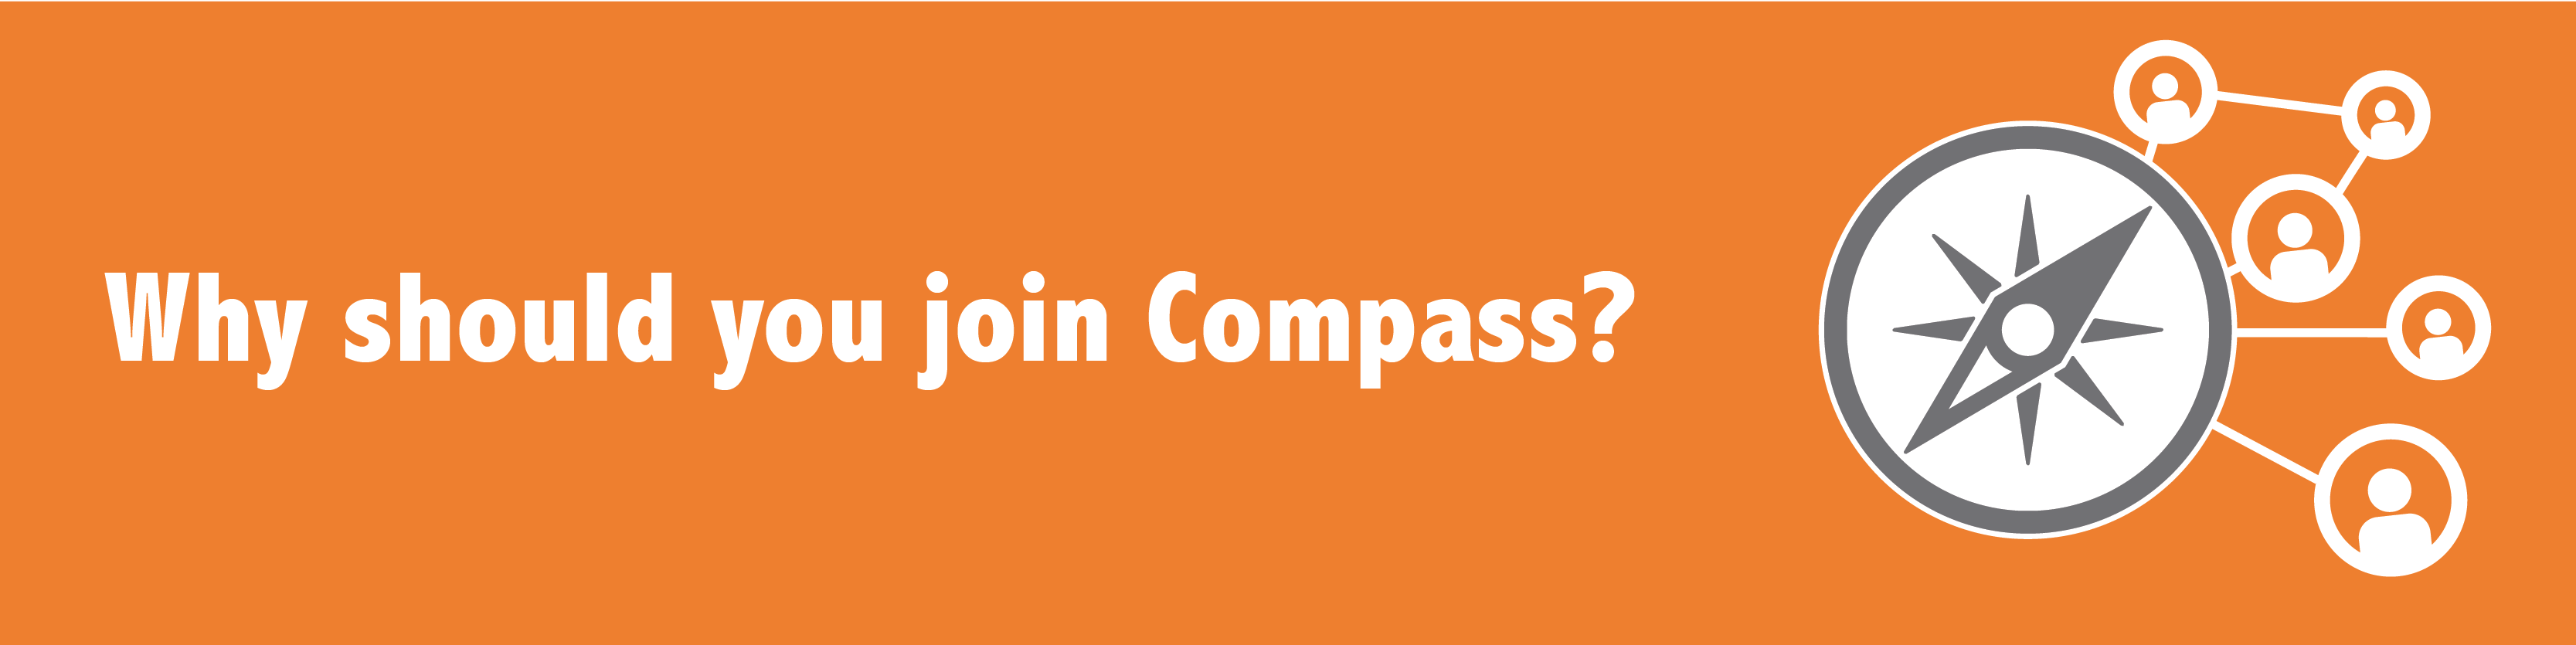 Why should you join compass